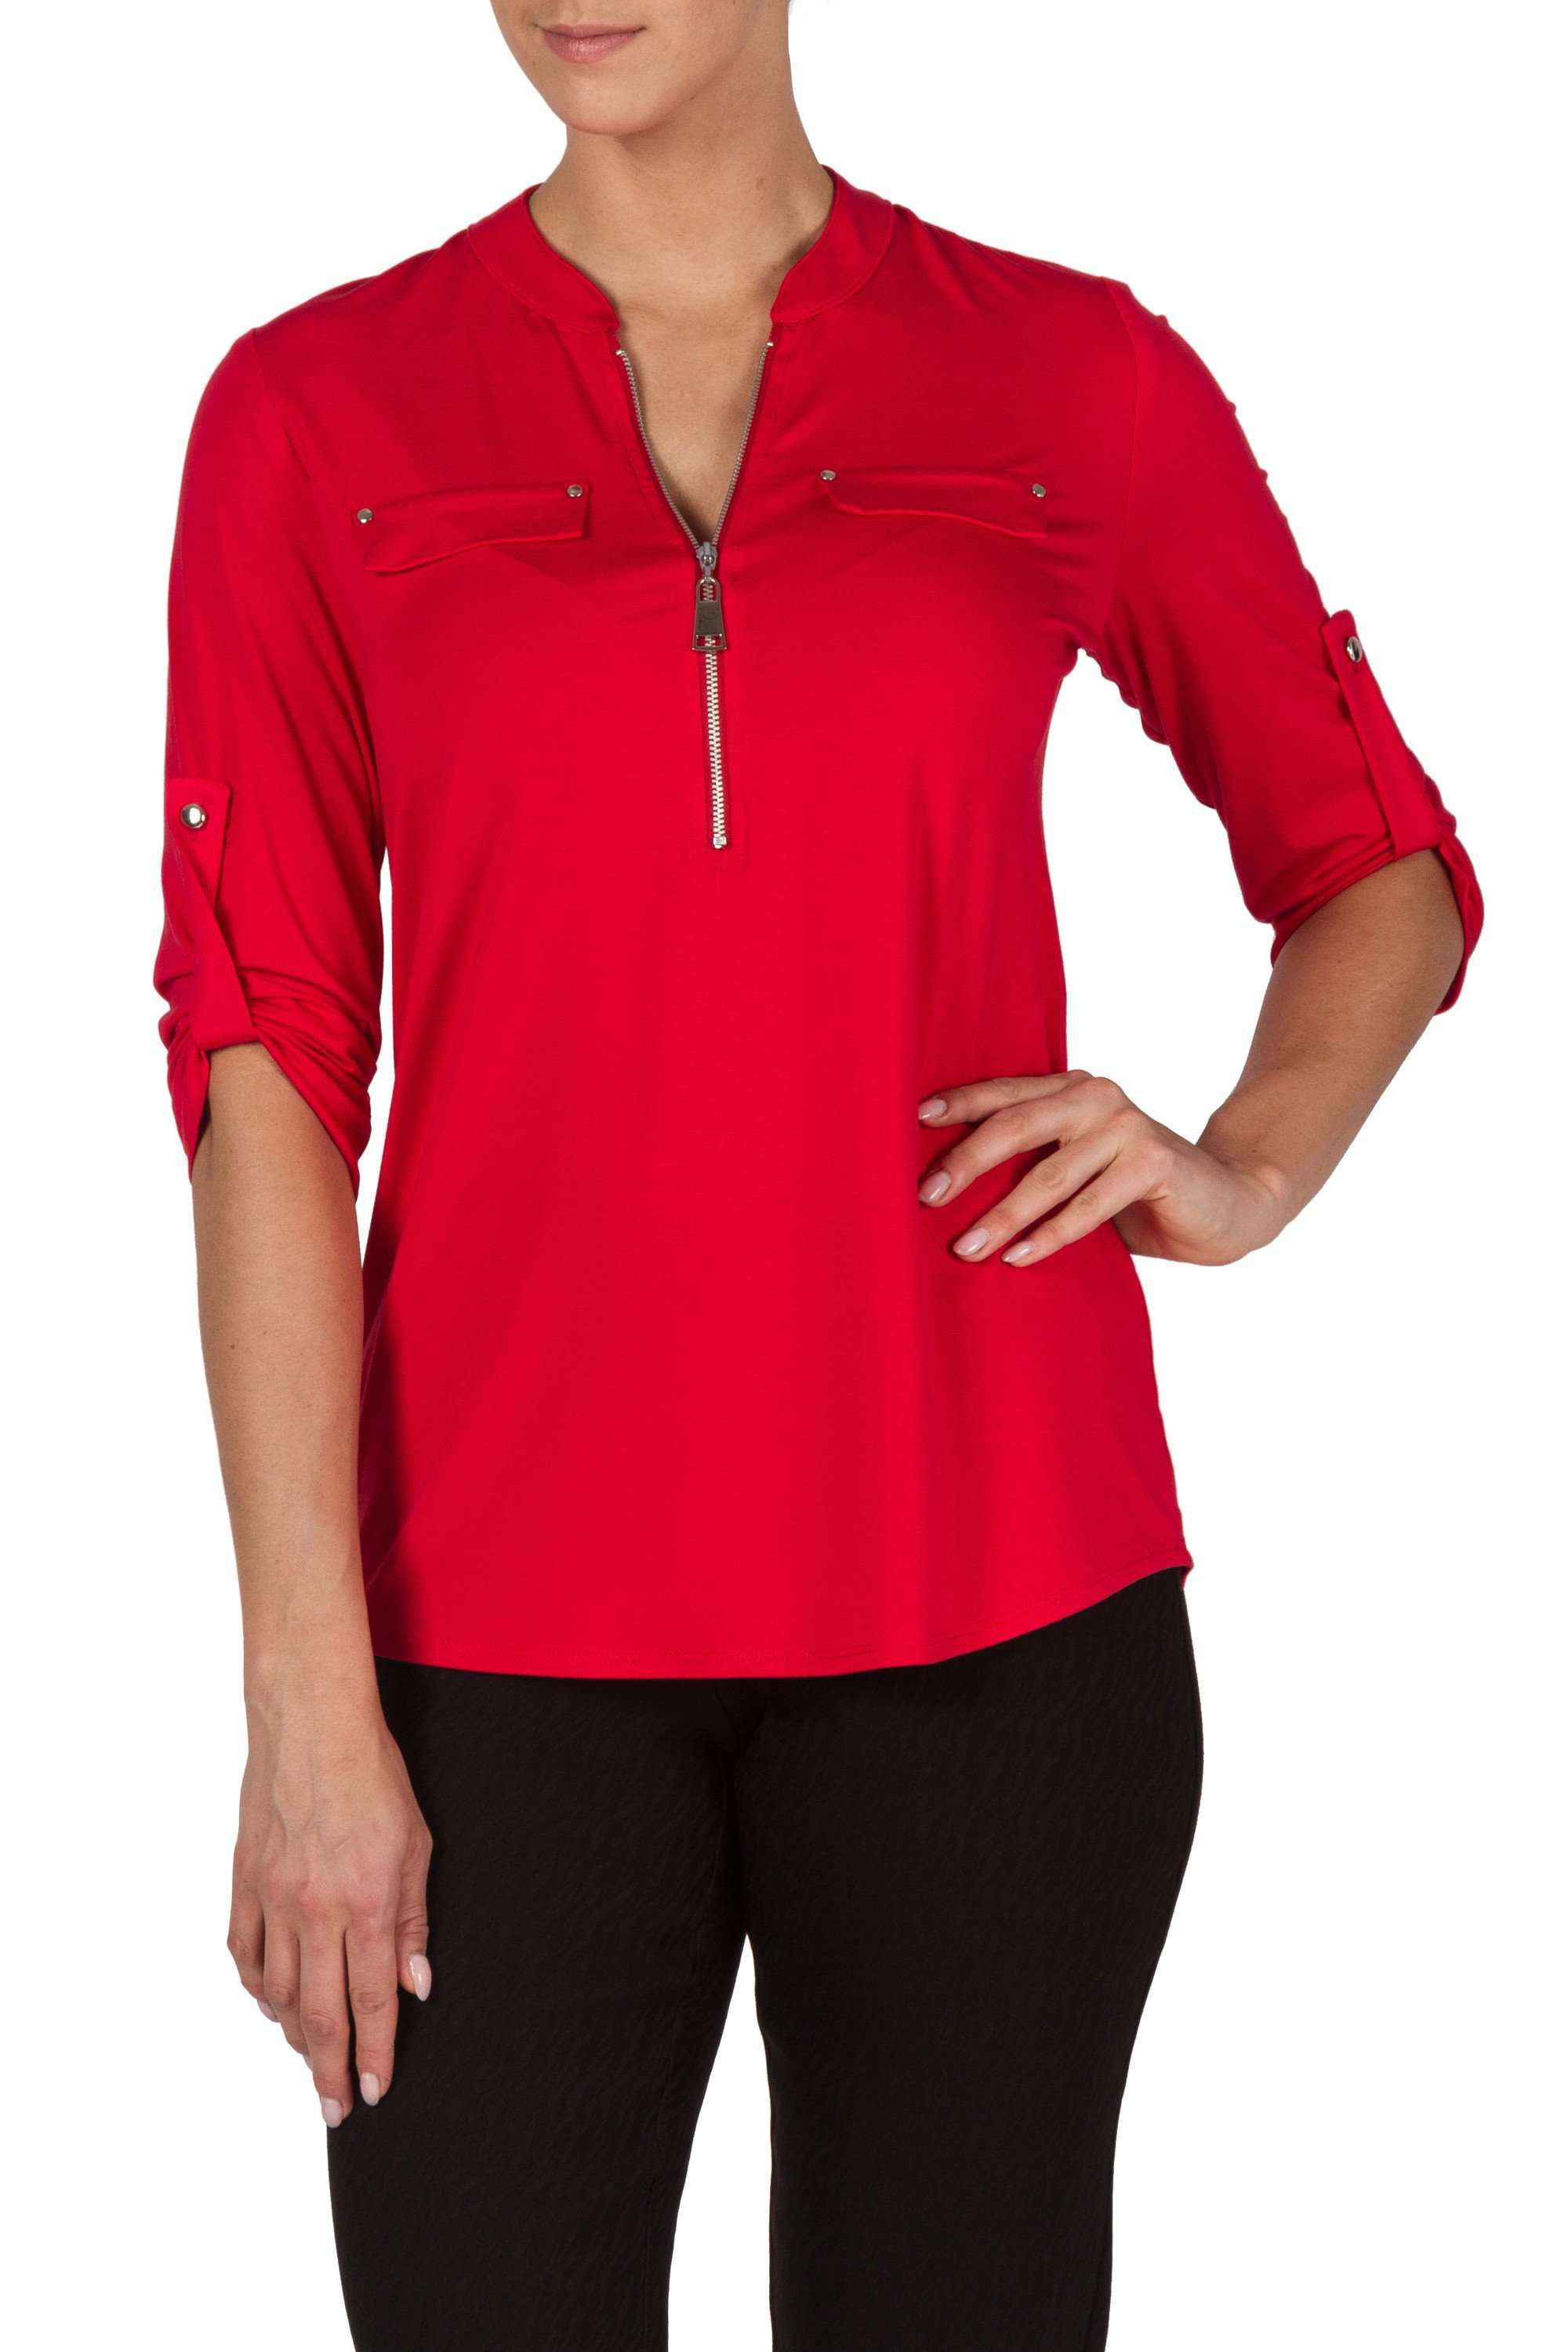 Red Blouse in Soft Quality Knit Zipper Front Detail Quality and Comfort - Yvonne Marie